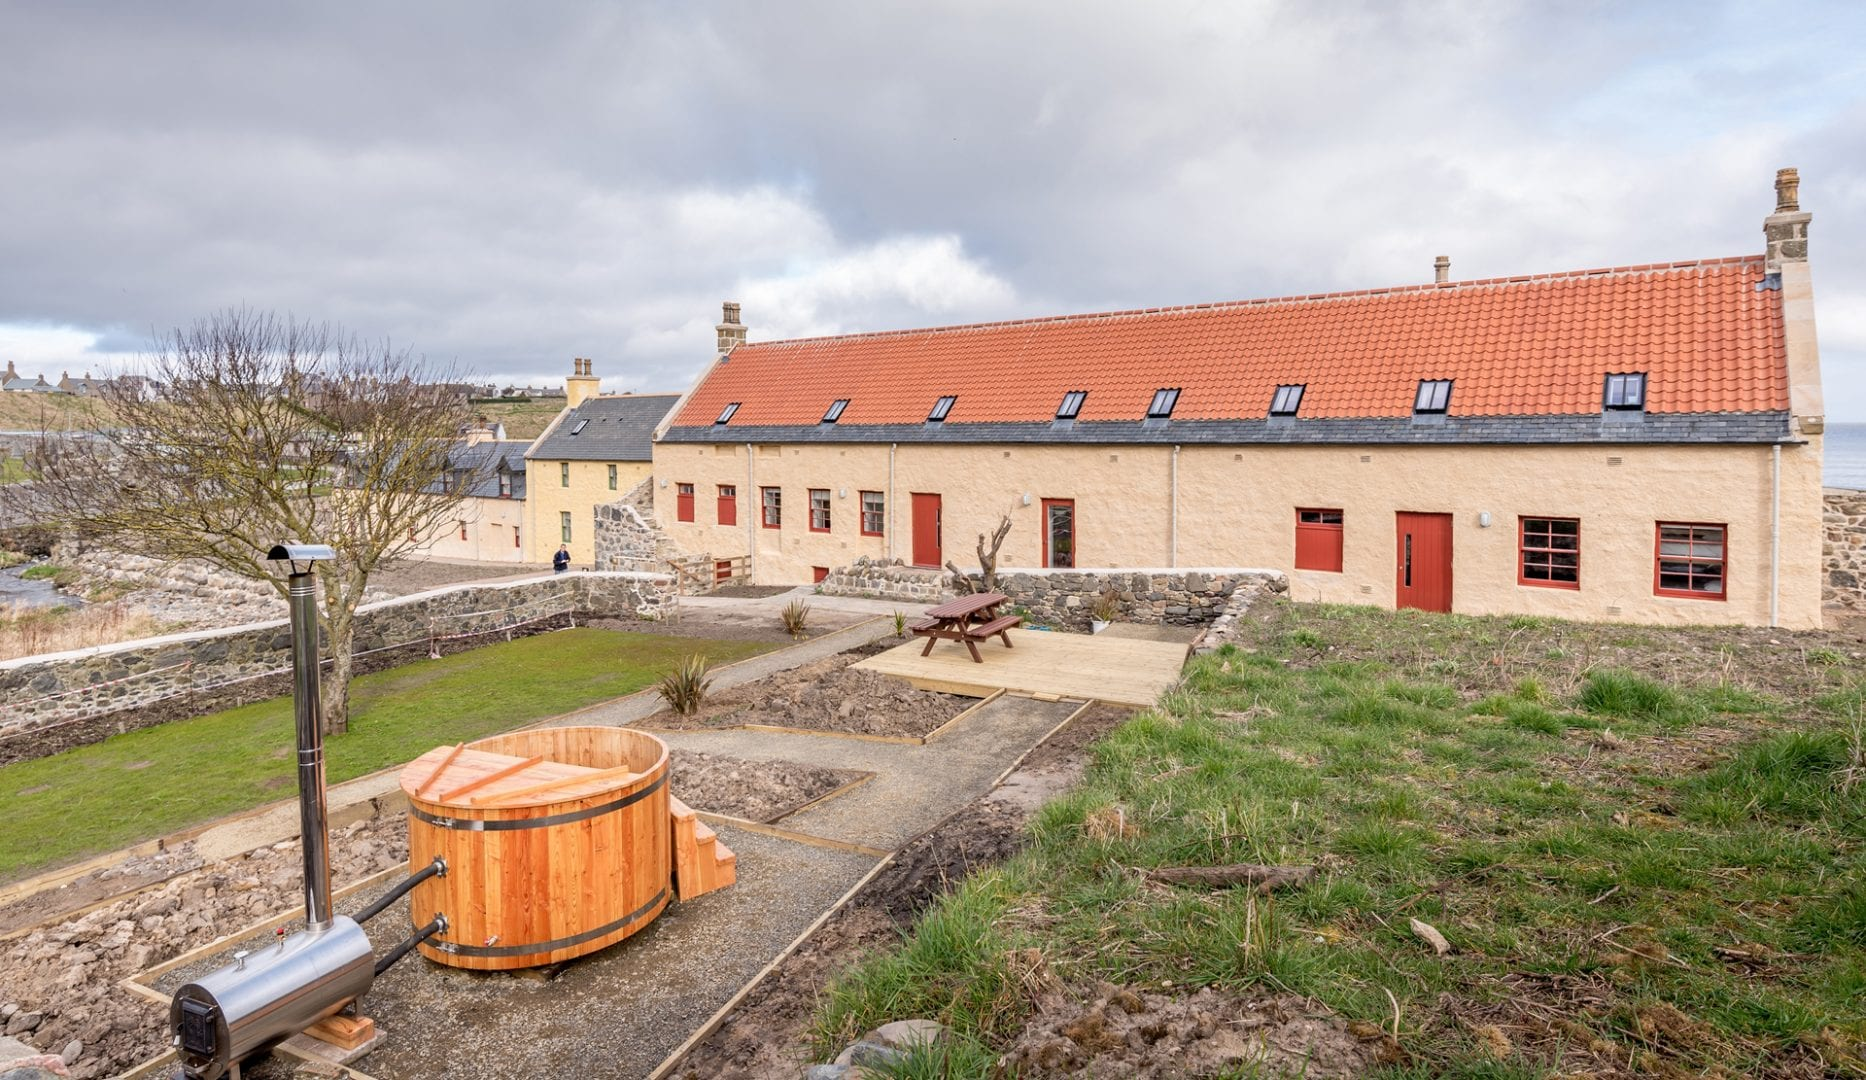 The Sail Loft Bunkhouse in Portsoy on the Moray Firth Coast